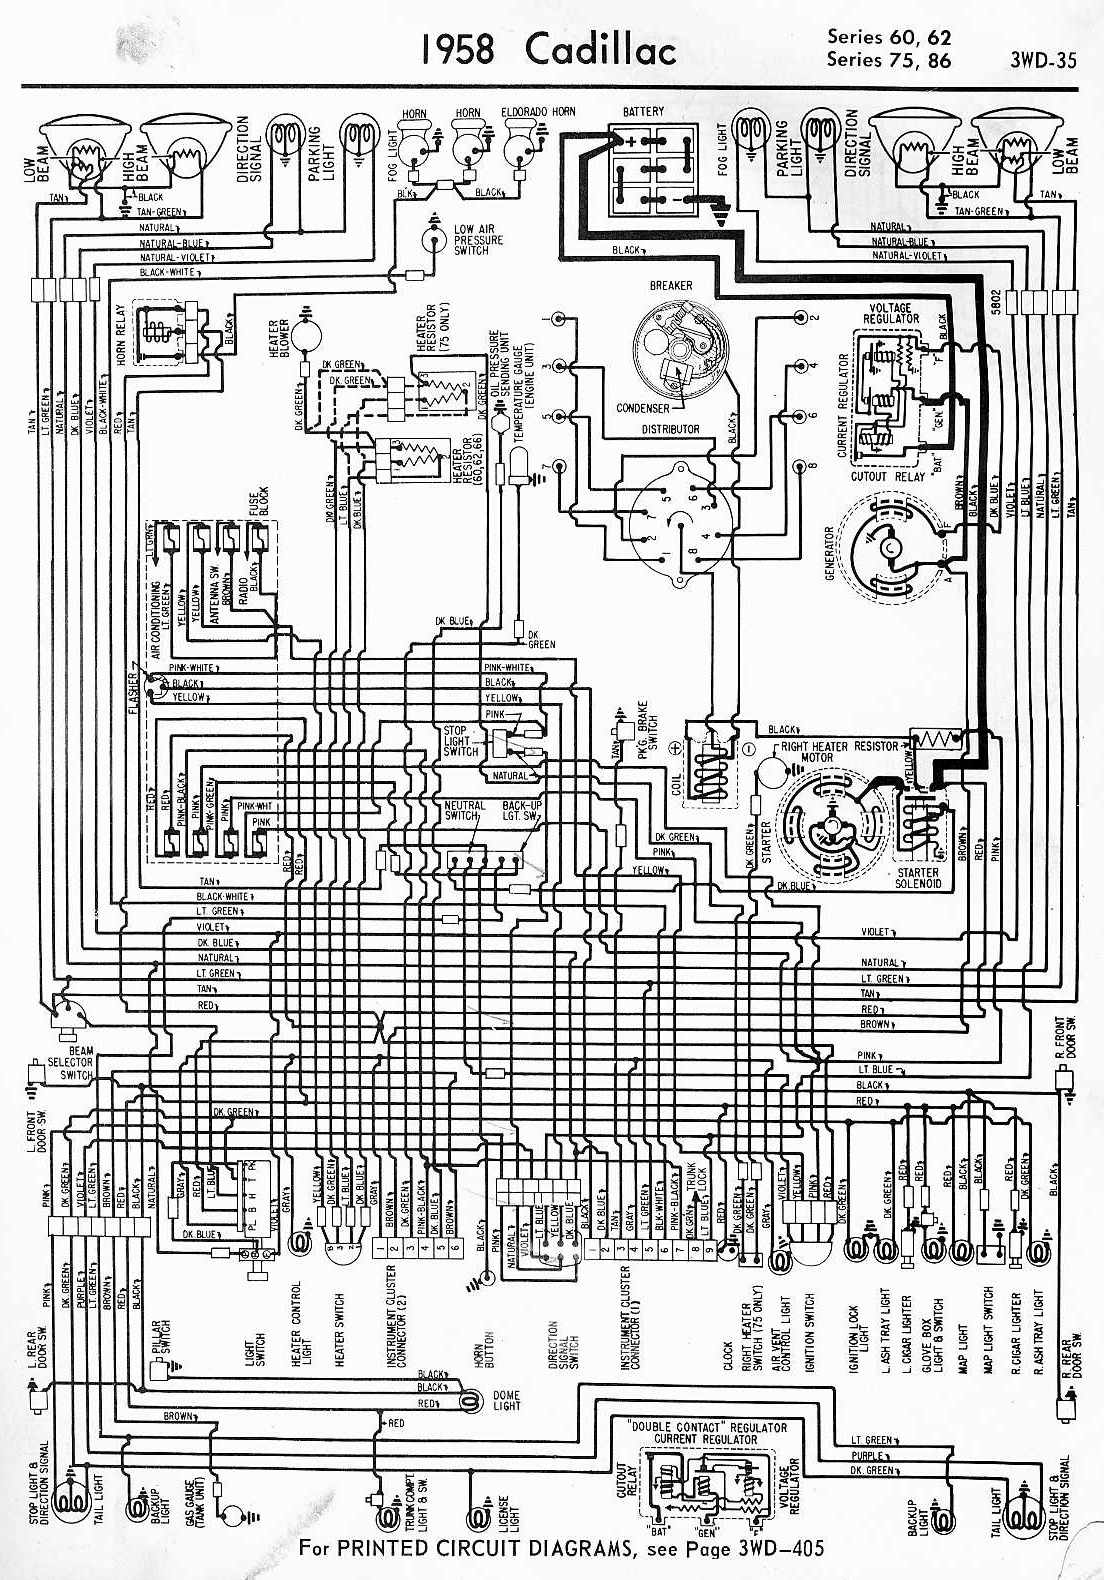 1957 Corvette Wiring Diagram Just Another Blog 86 C10 Free Picture Schematic Cadillac Download Diagrams Rh 71 Jessicadonath De Ignition Switch Chevy